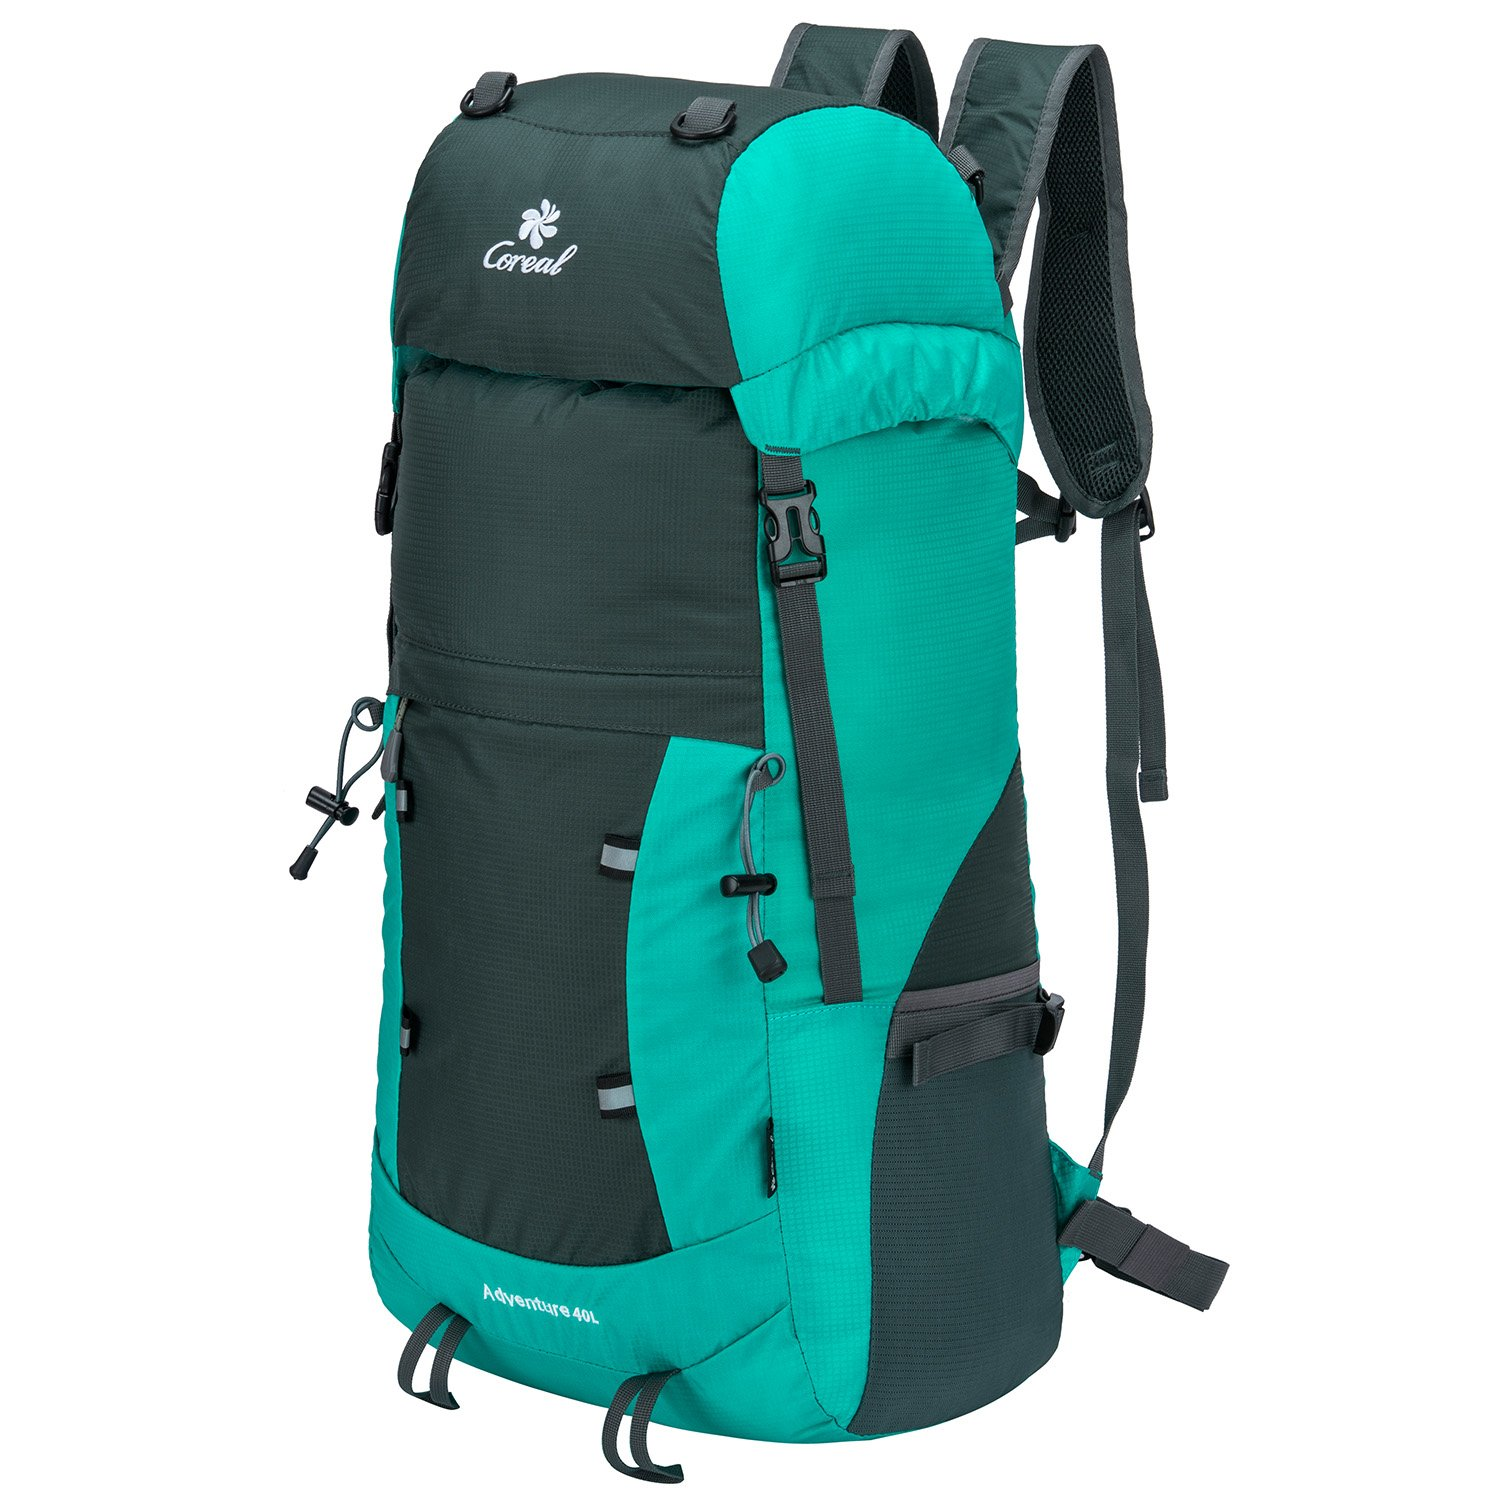 Coreal 40L Lightweight Foldable Backpack Hiking Travel Packable Daypack Lake Blue